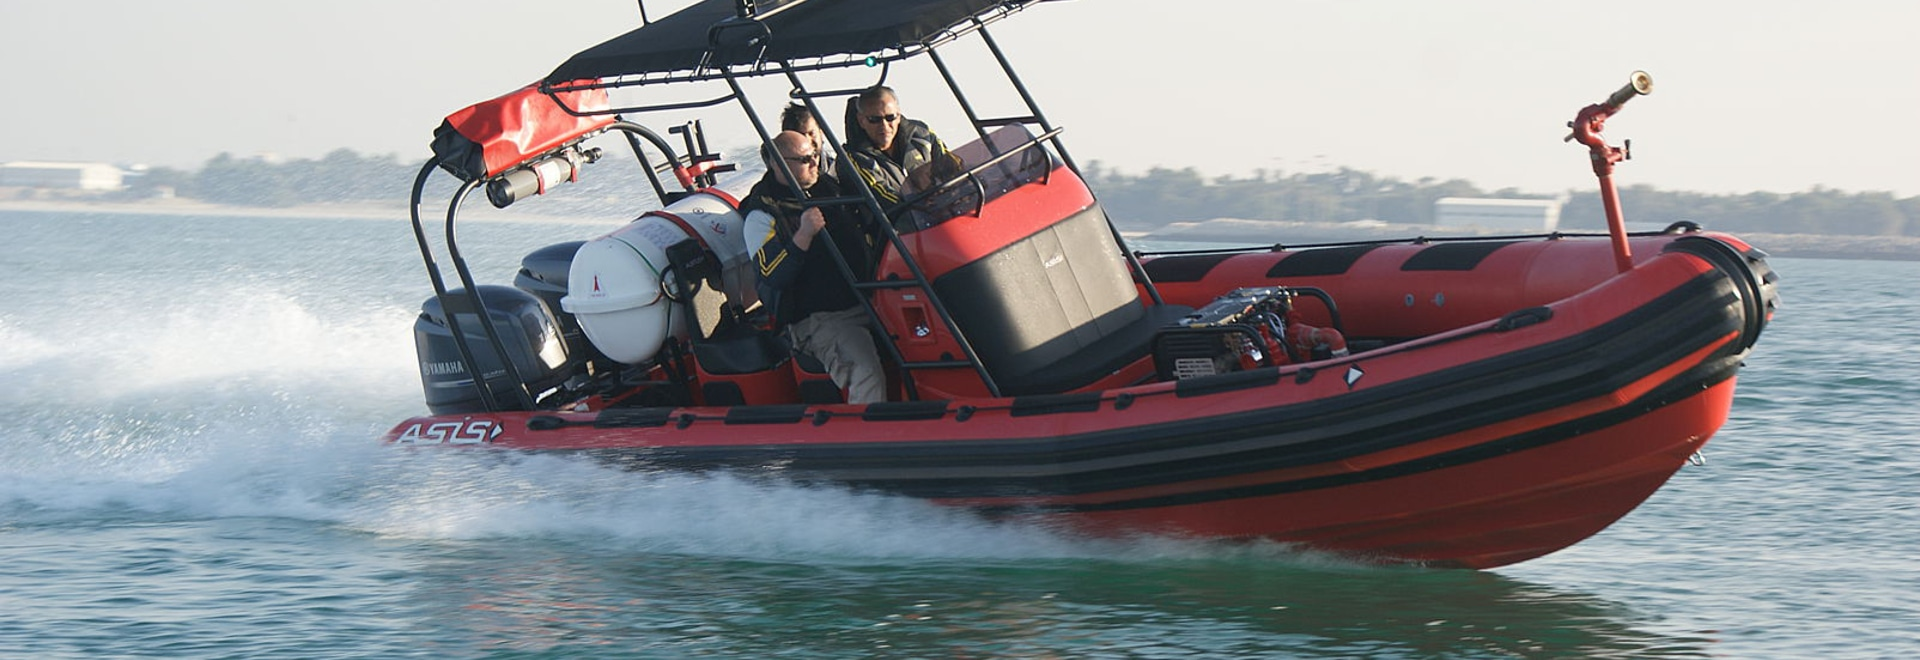 Firefighting Boats